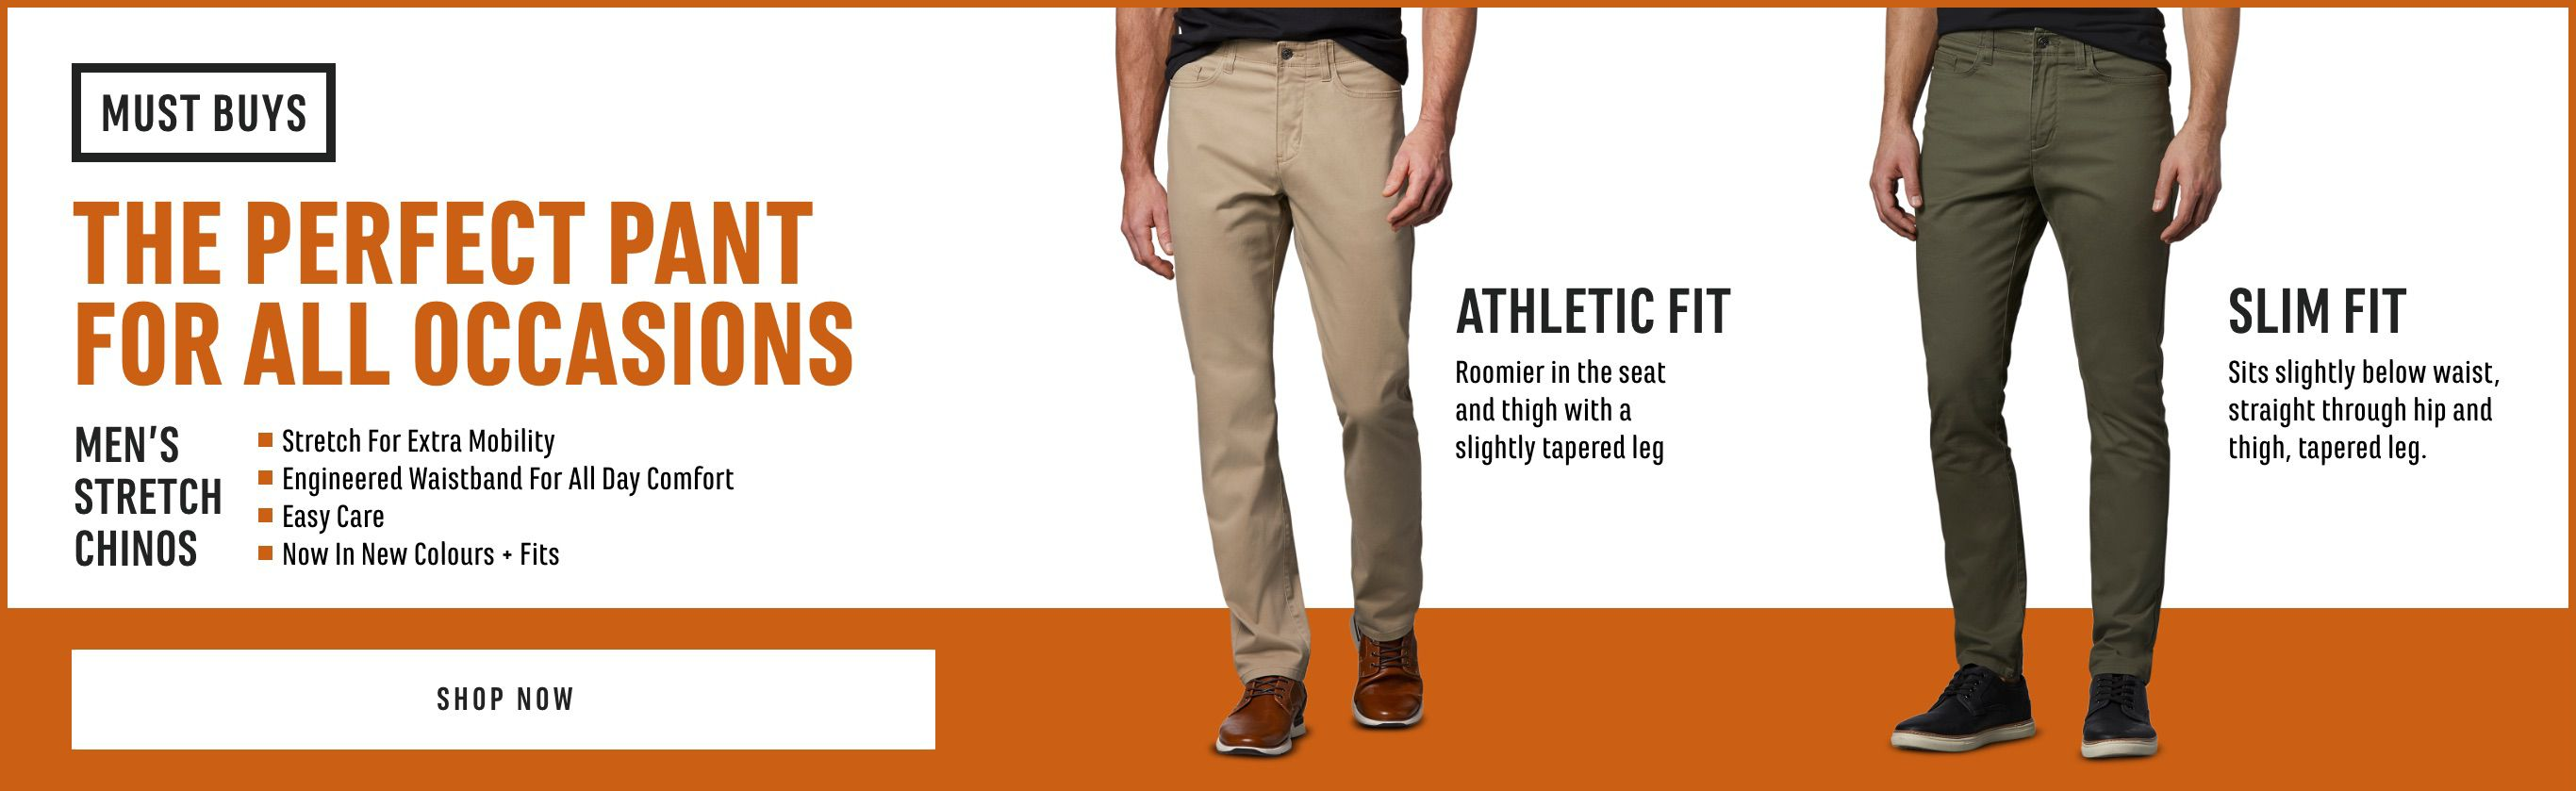 Must Buy! Men's Stretch Chinos. The Perfect Pant for All Occasions. Stretch for Extra Mobility. Engineered Waistband for All Day Comfort. Now in New Colours and Fits. Athletic Fit: Roomier in the Seat and Thigh with a Slightly Tapered Leg. Slim Fit: Sits Slightly Below Waist, Straight Through Hip and Thigh, Tapered Leg